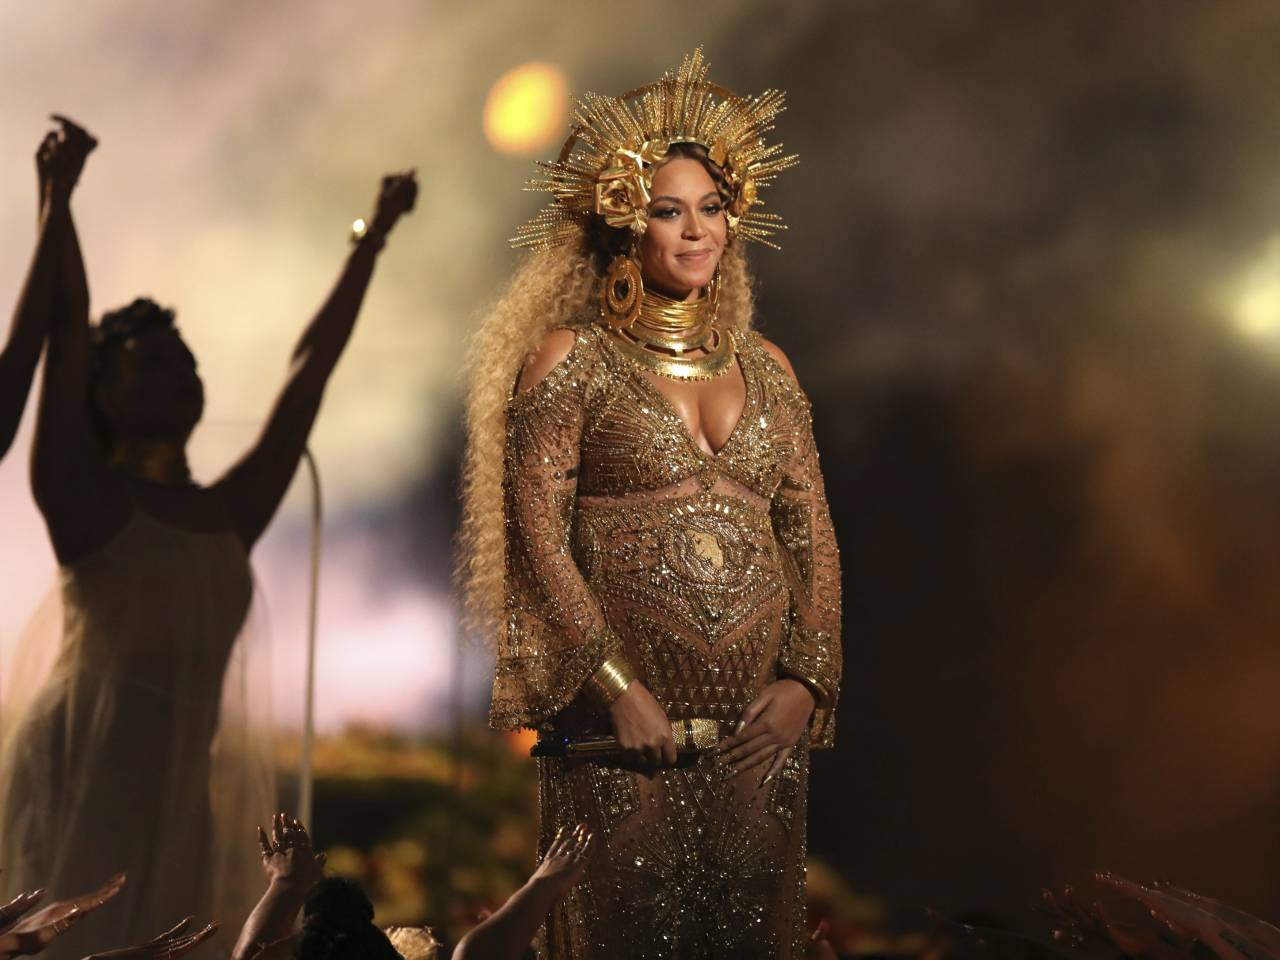 Beyoncé Cancels Coachella Performance, Plans To Perform At 2018 Festival